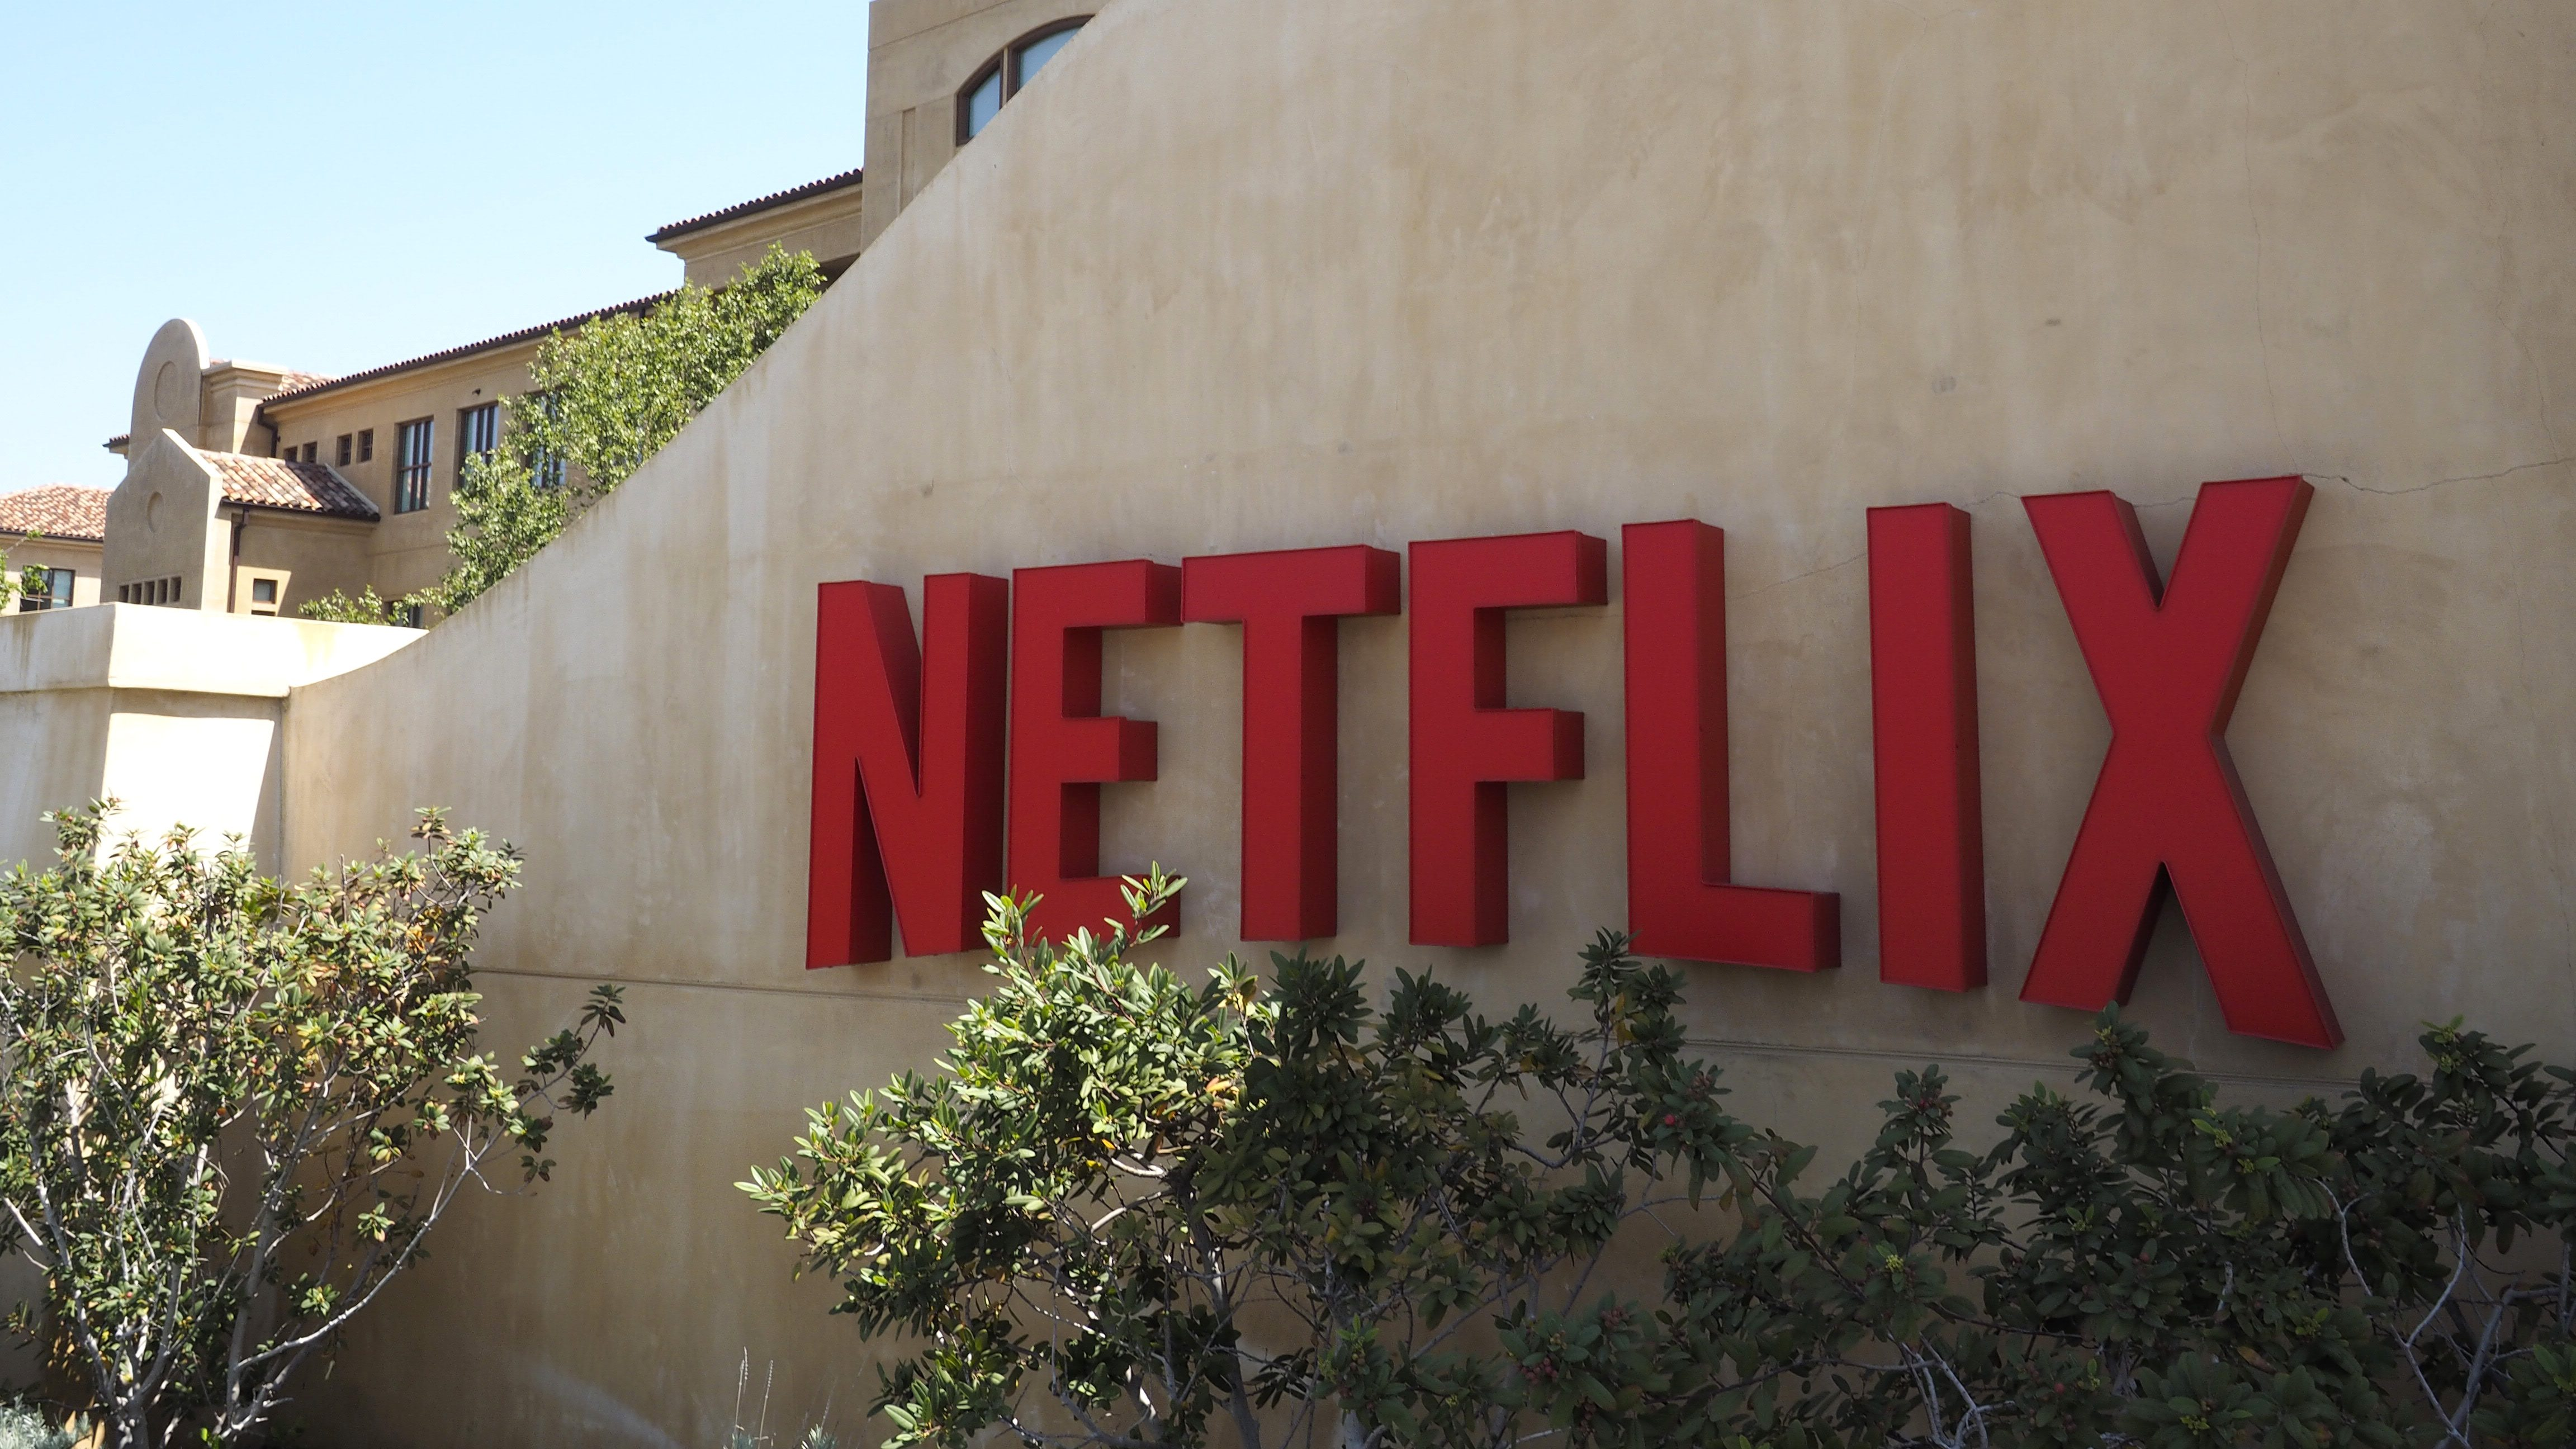 Netflix Shares Dip On Subscriber Slowdown, But Wall Street Bulls Still Buy The Story